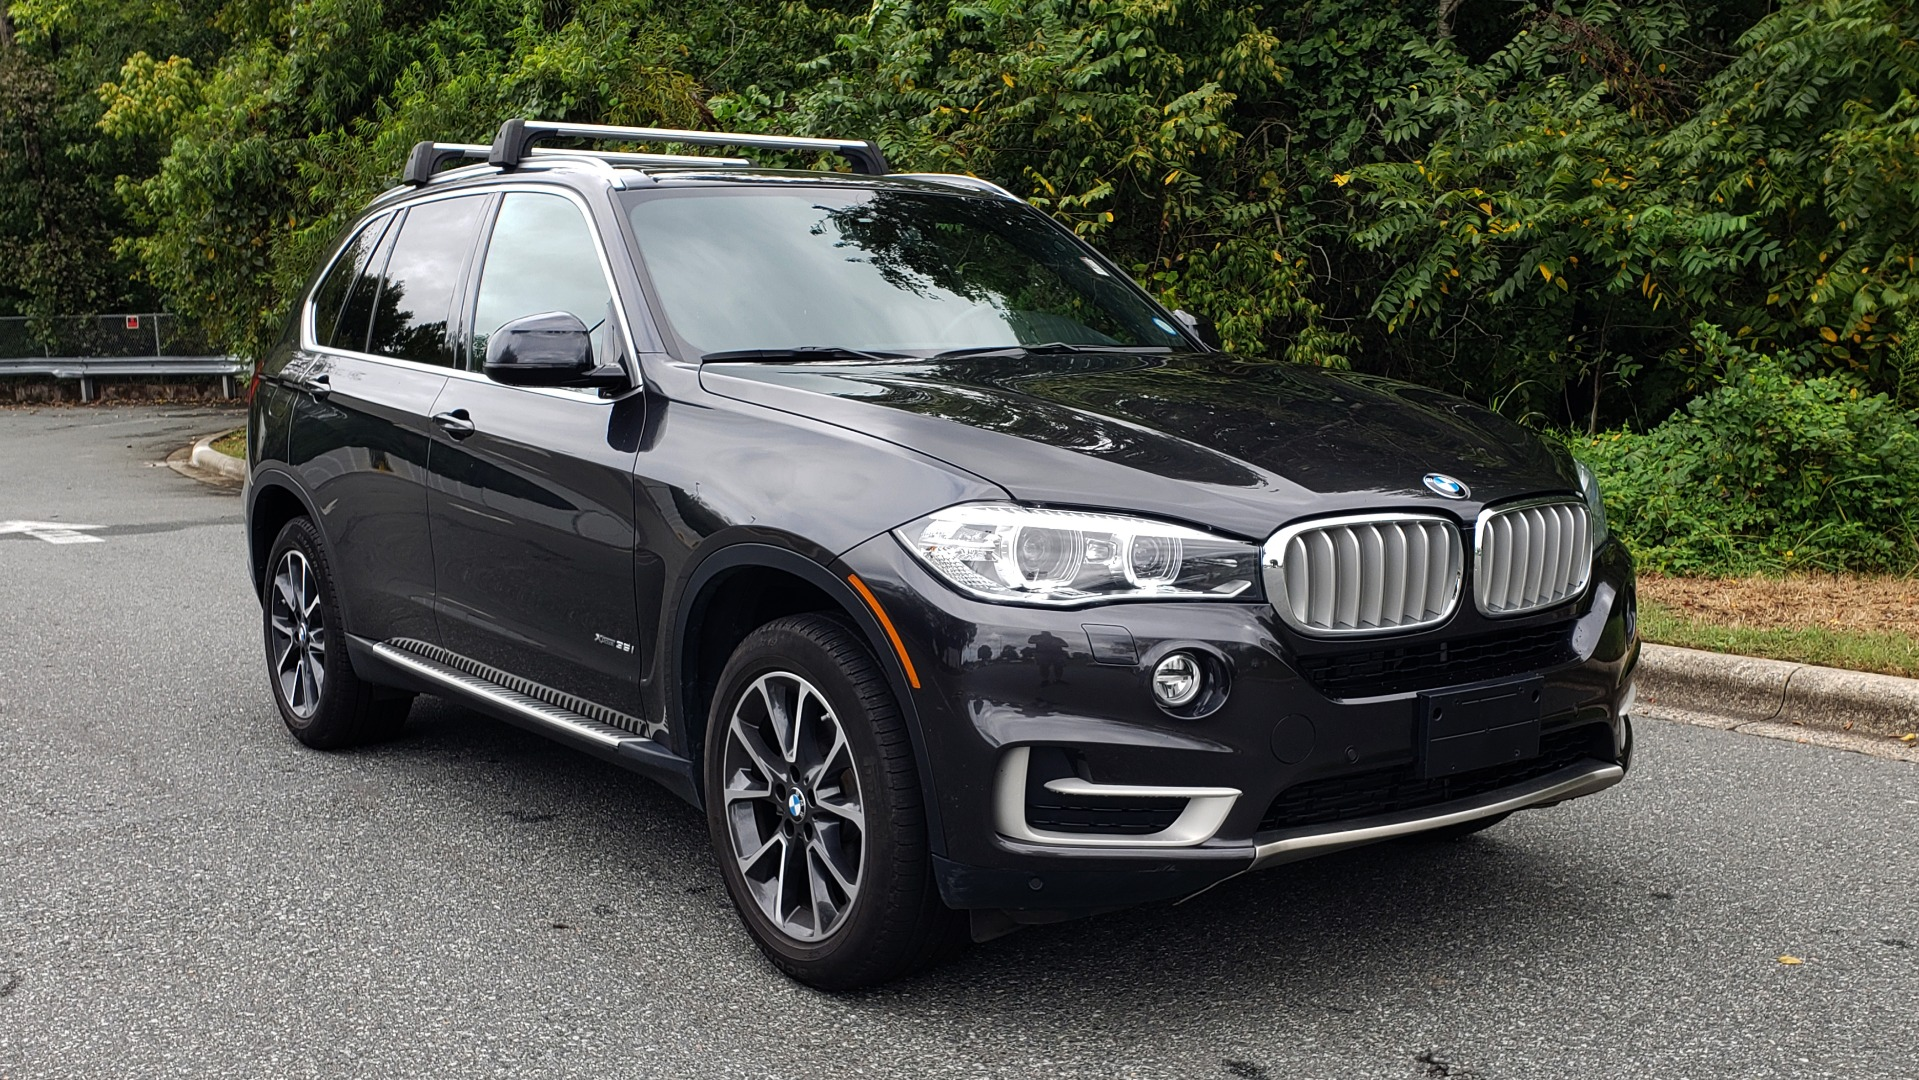 Used 2017 BMW X5 XDRIVE35I / PREM PKG / COLD WTHR / PANO-ROOF / REARVIEW for sale $37,995 at Formula Imports in Charlotte NC 28227 11